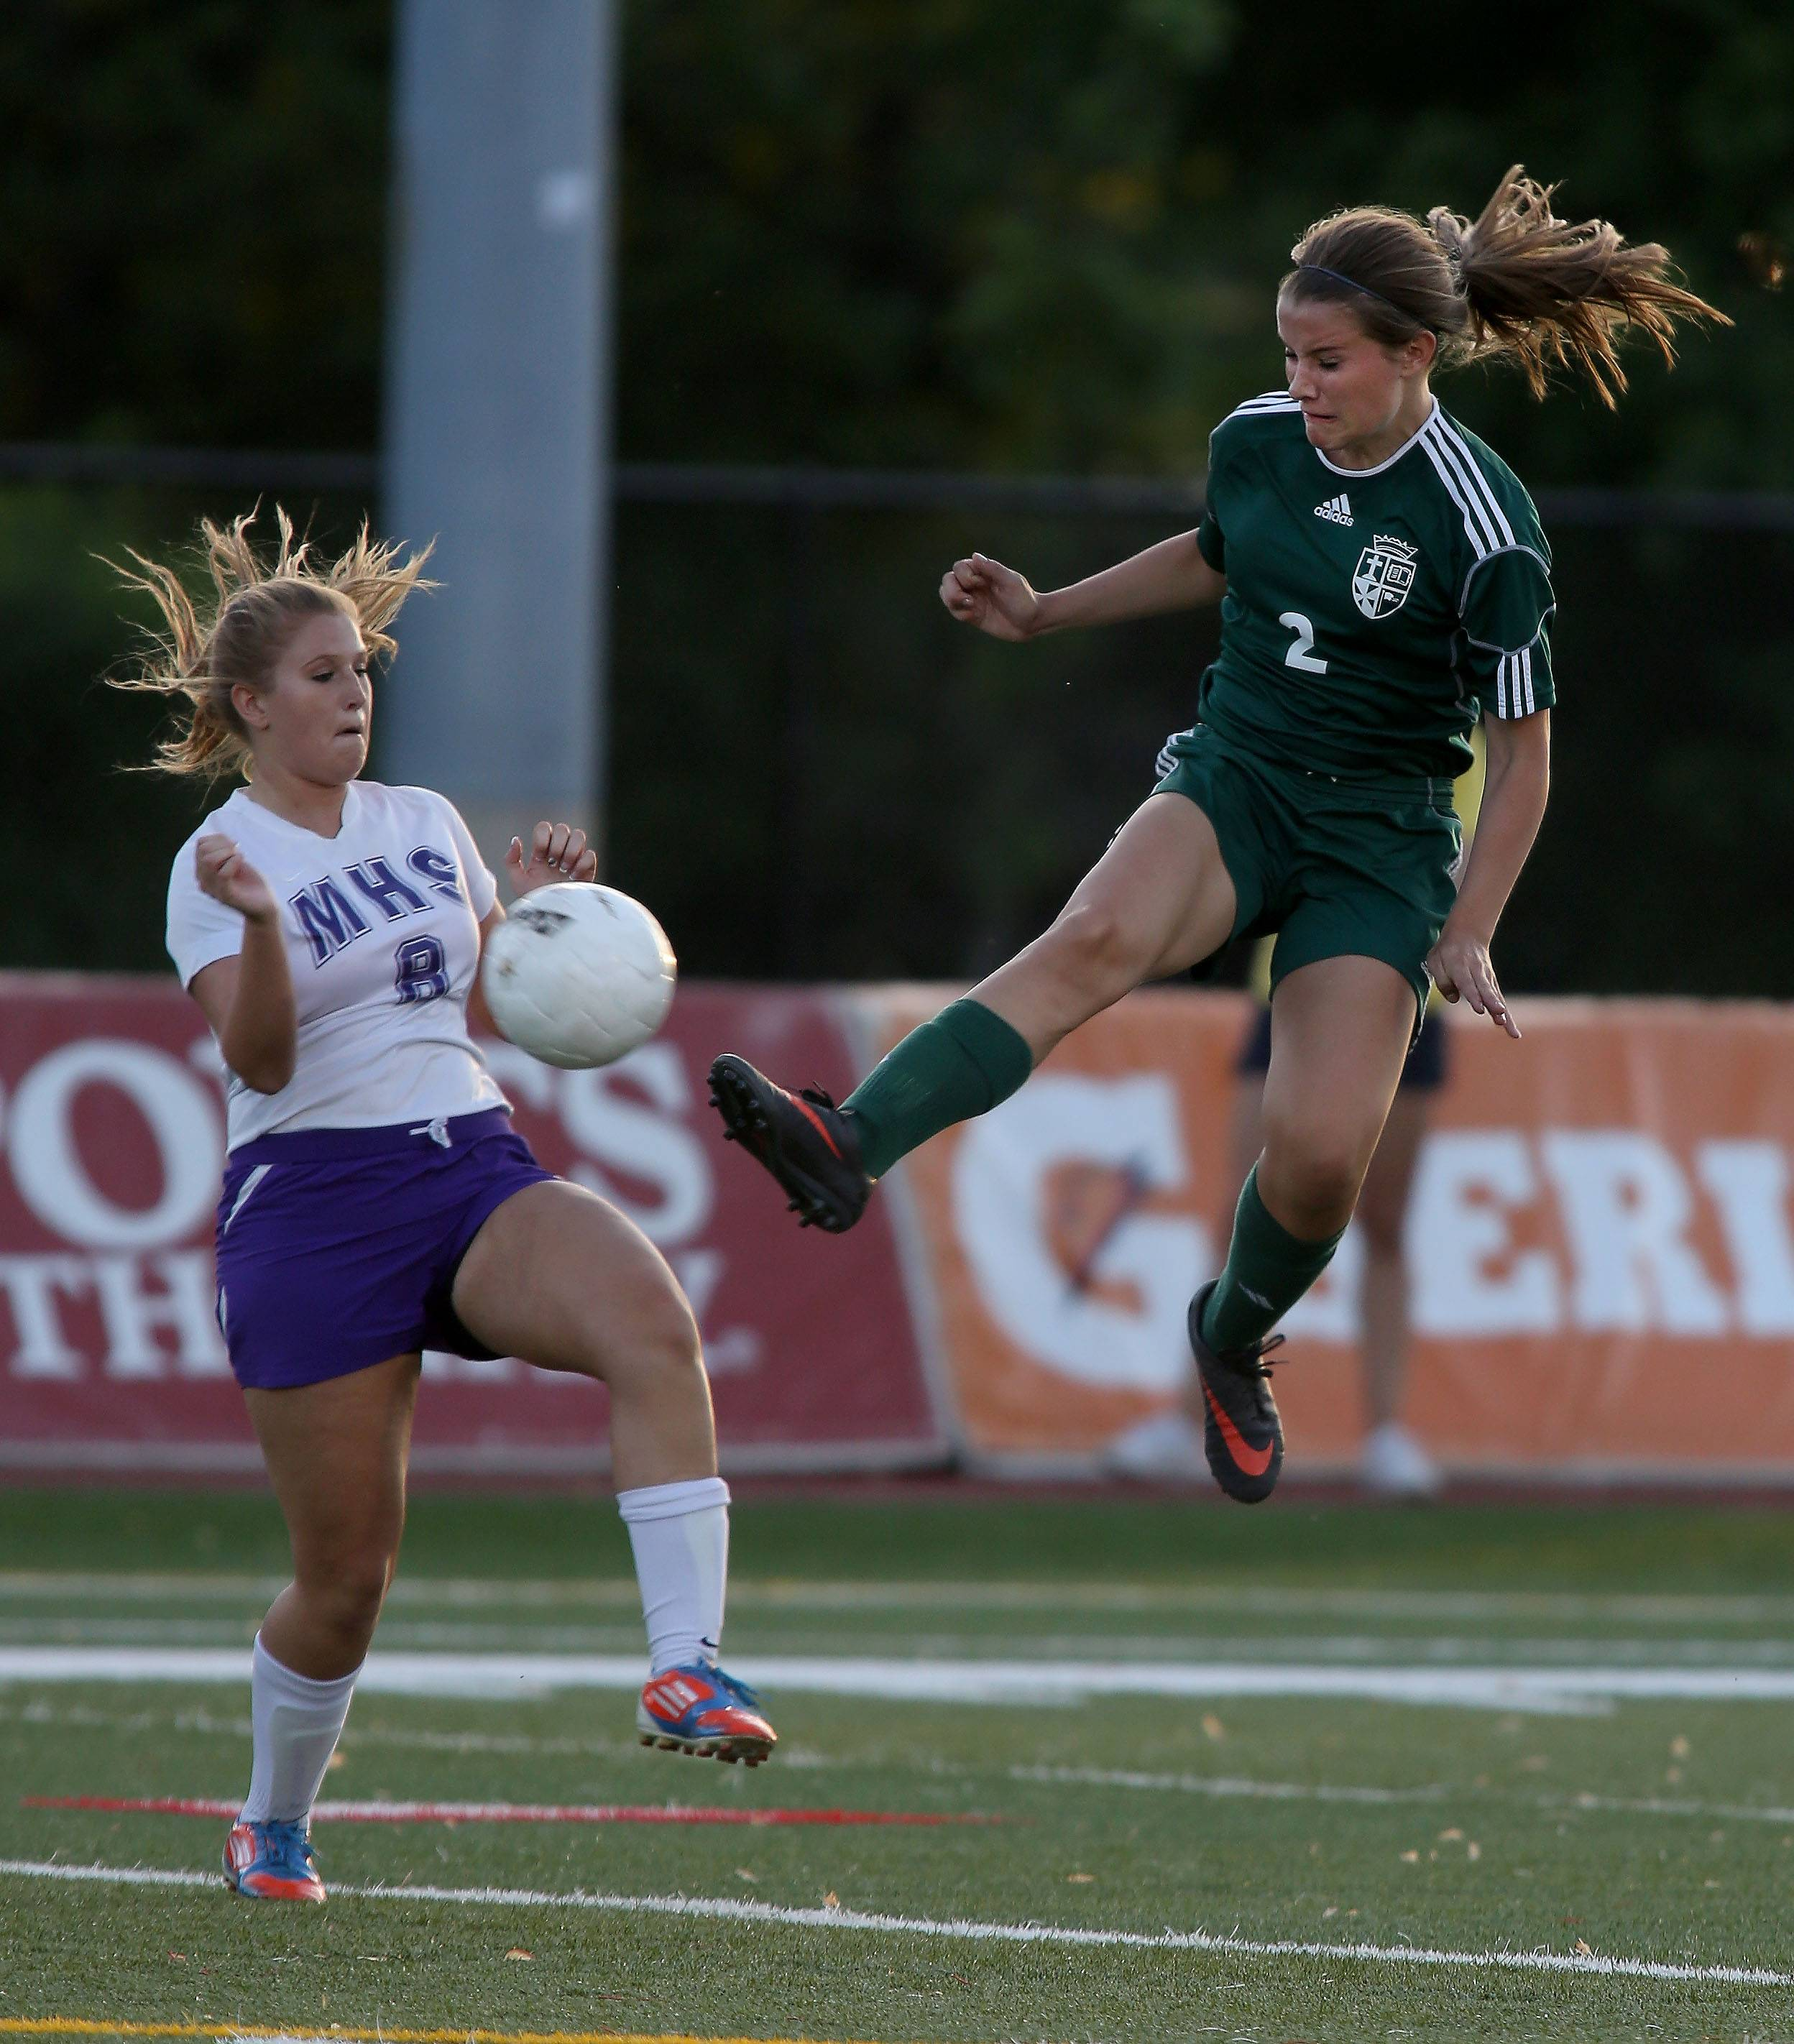 St. Edward's Kathleen Duffy, right, kicks the ball from Amber Olshefski of Manteno during the Class 1A state soccer semifinals at North Central College in Naperville on Friday.